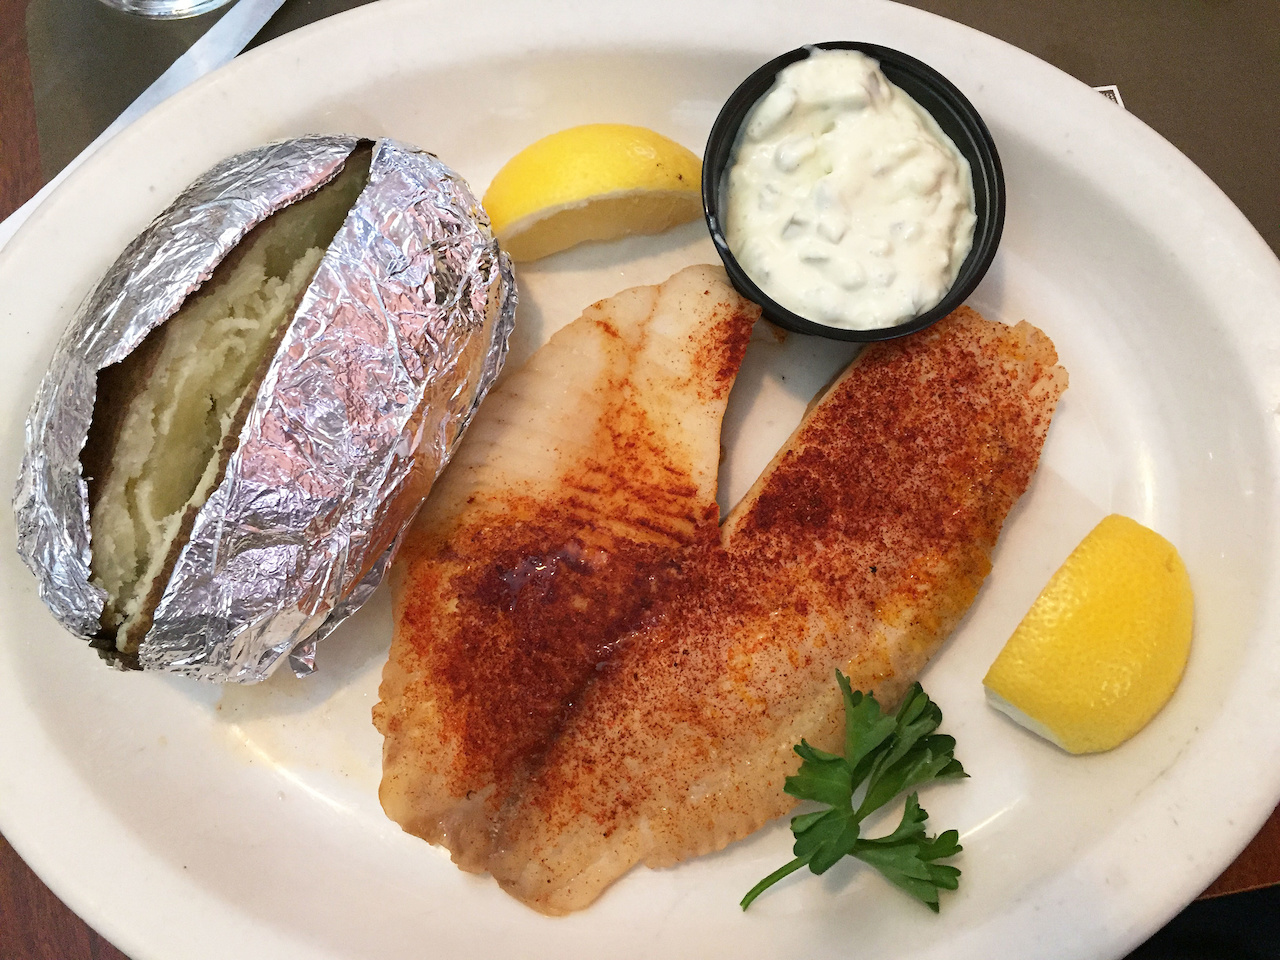 The tilapia is so good and comes with a choice of two sides: I went with the baked potato and the cucumber salad (which was devoured in under 1 minute).